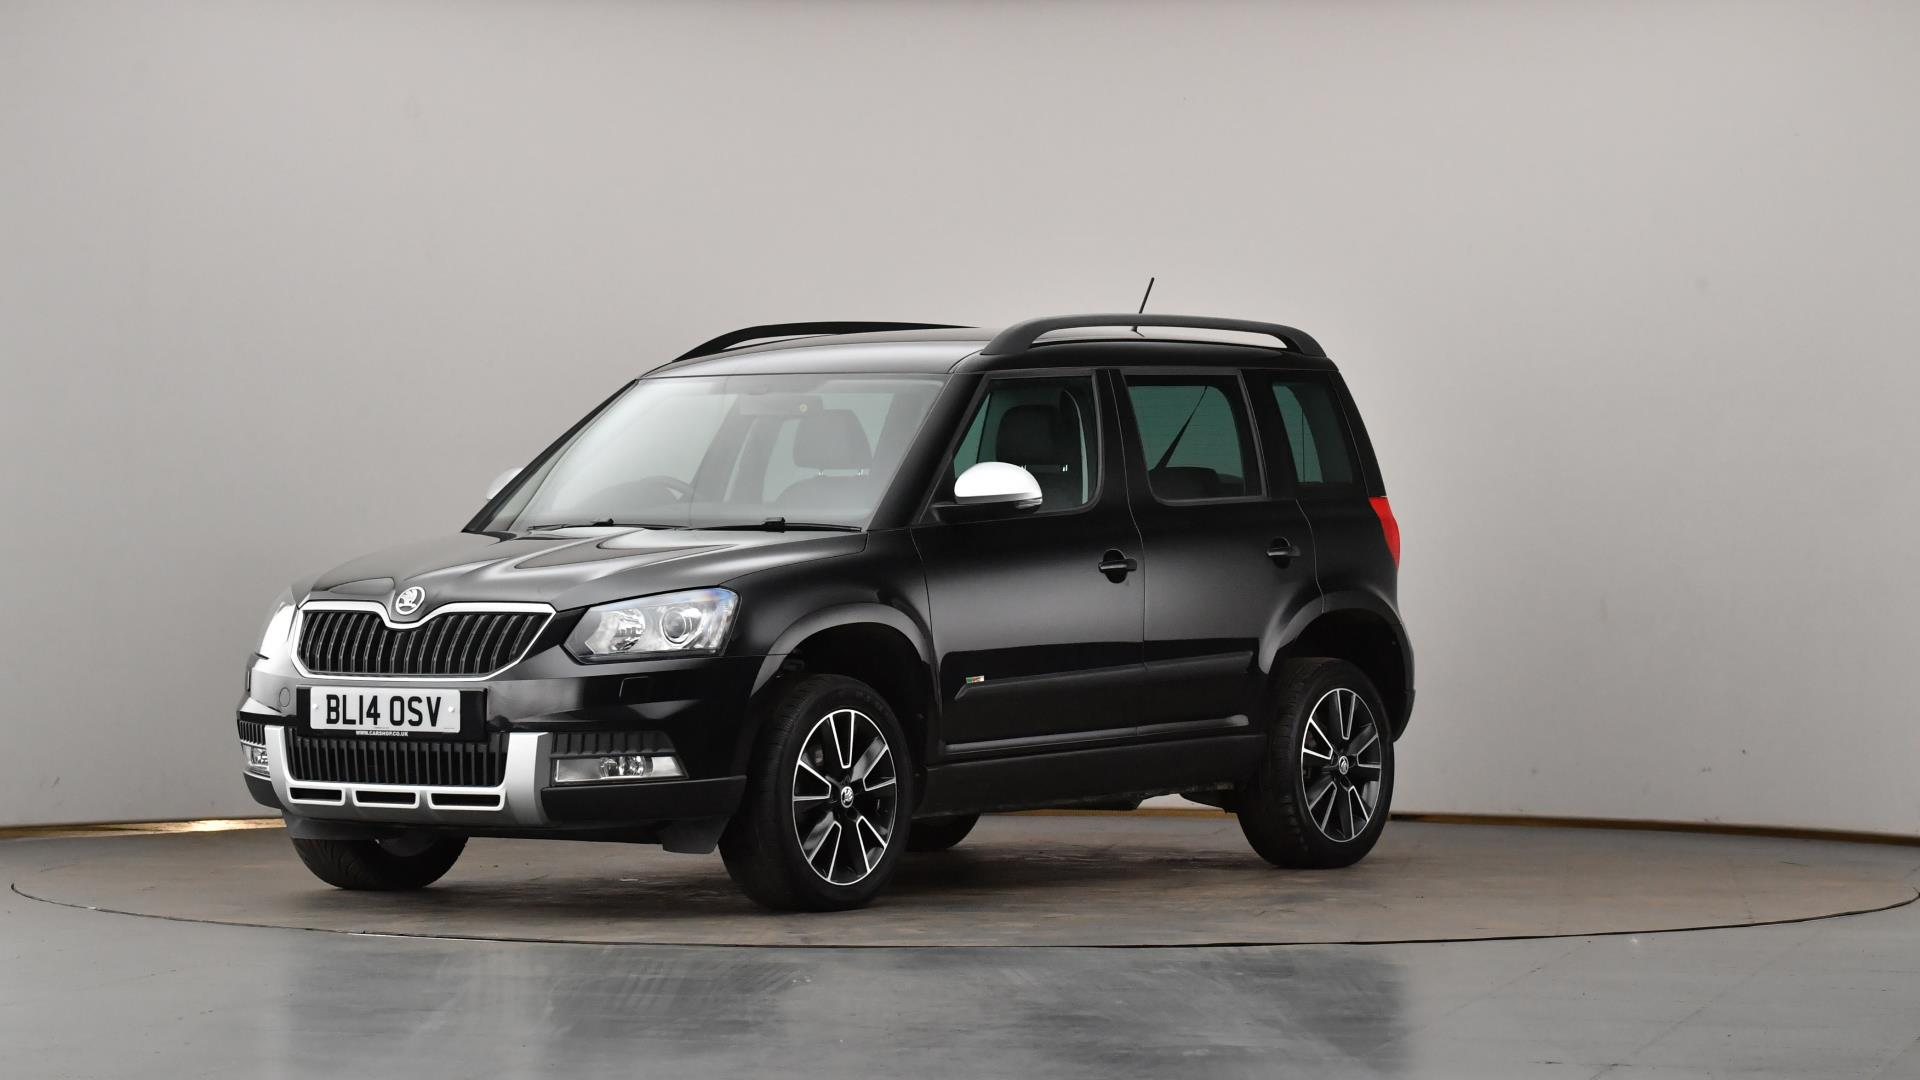 2014 skoda yeti sell my car sell my car buy my car. Black Bedroom Furniture Sets. Home Design Ideas